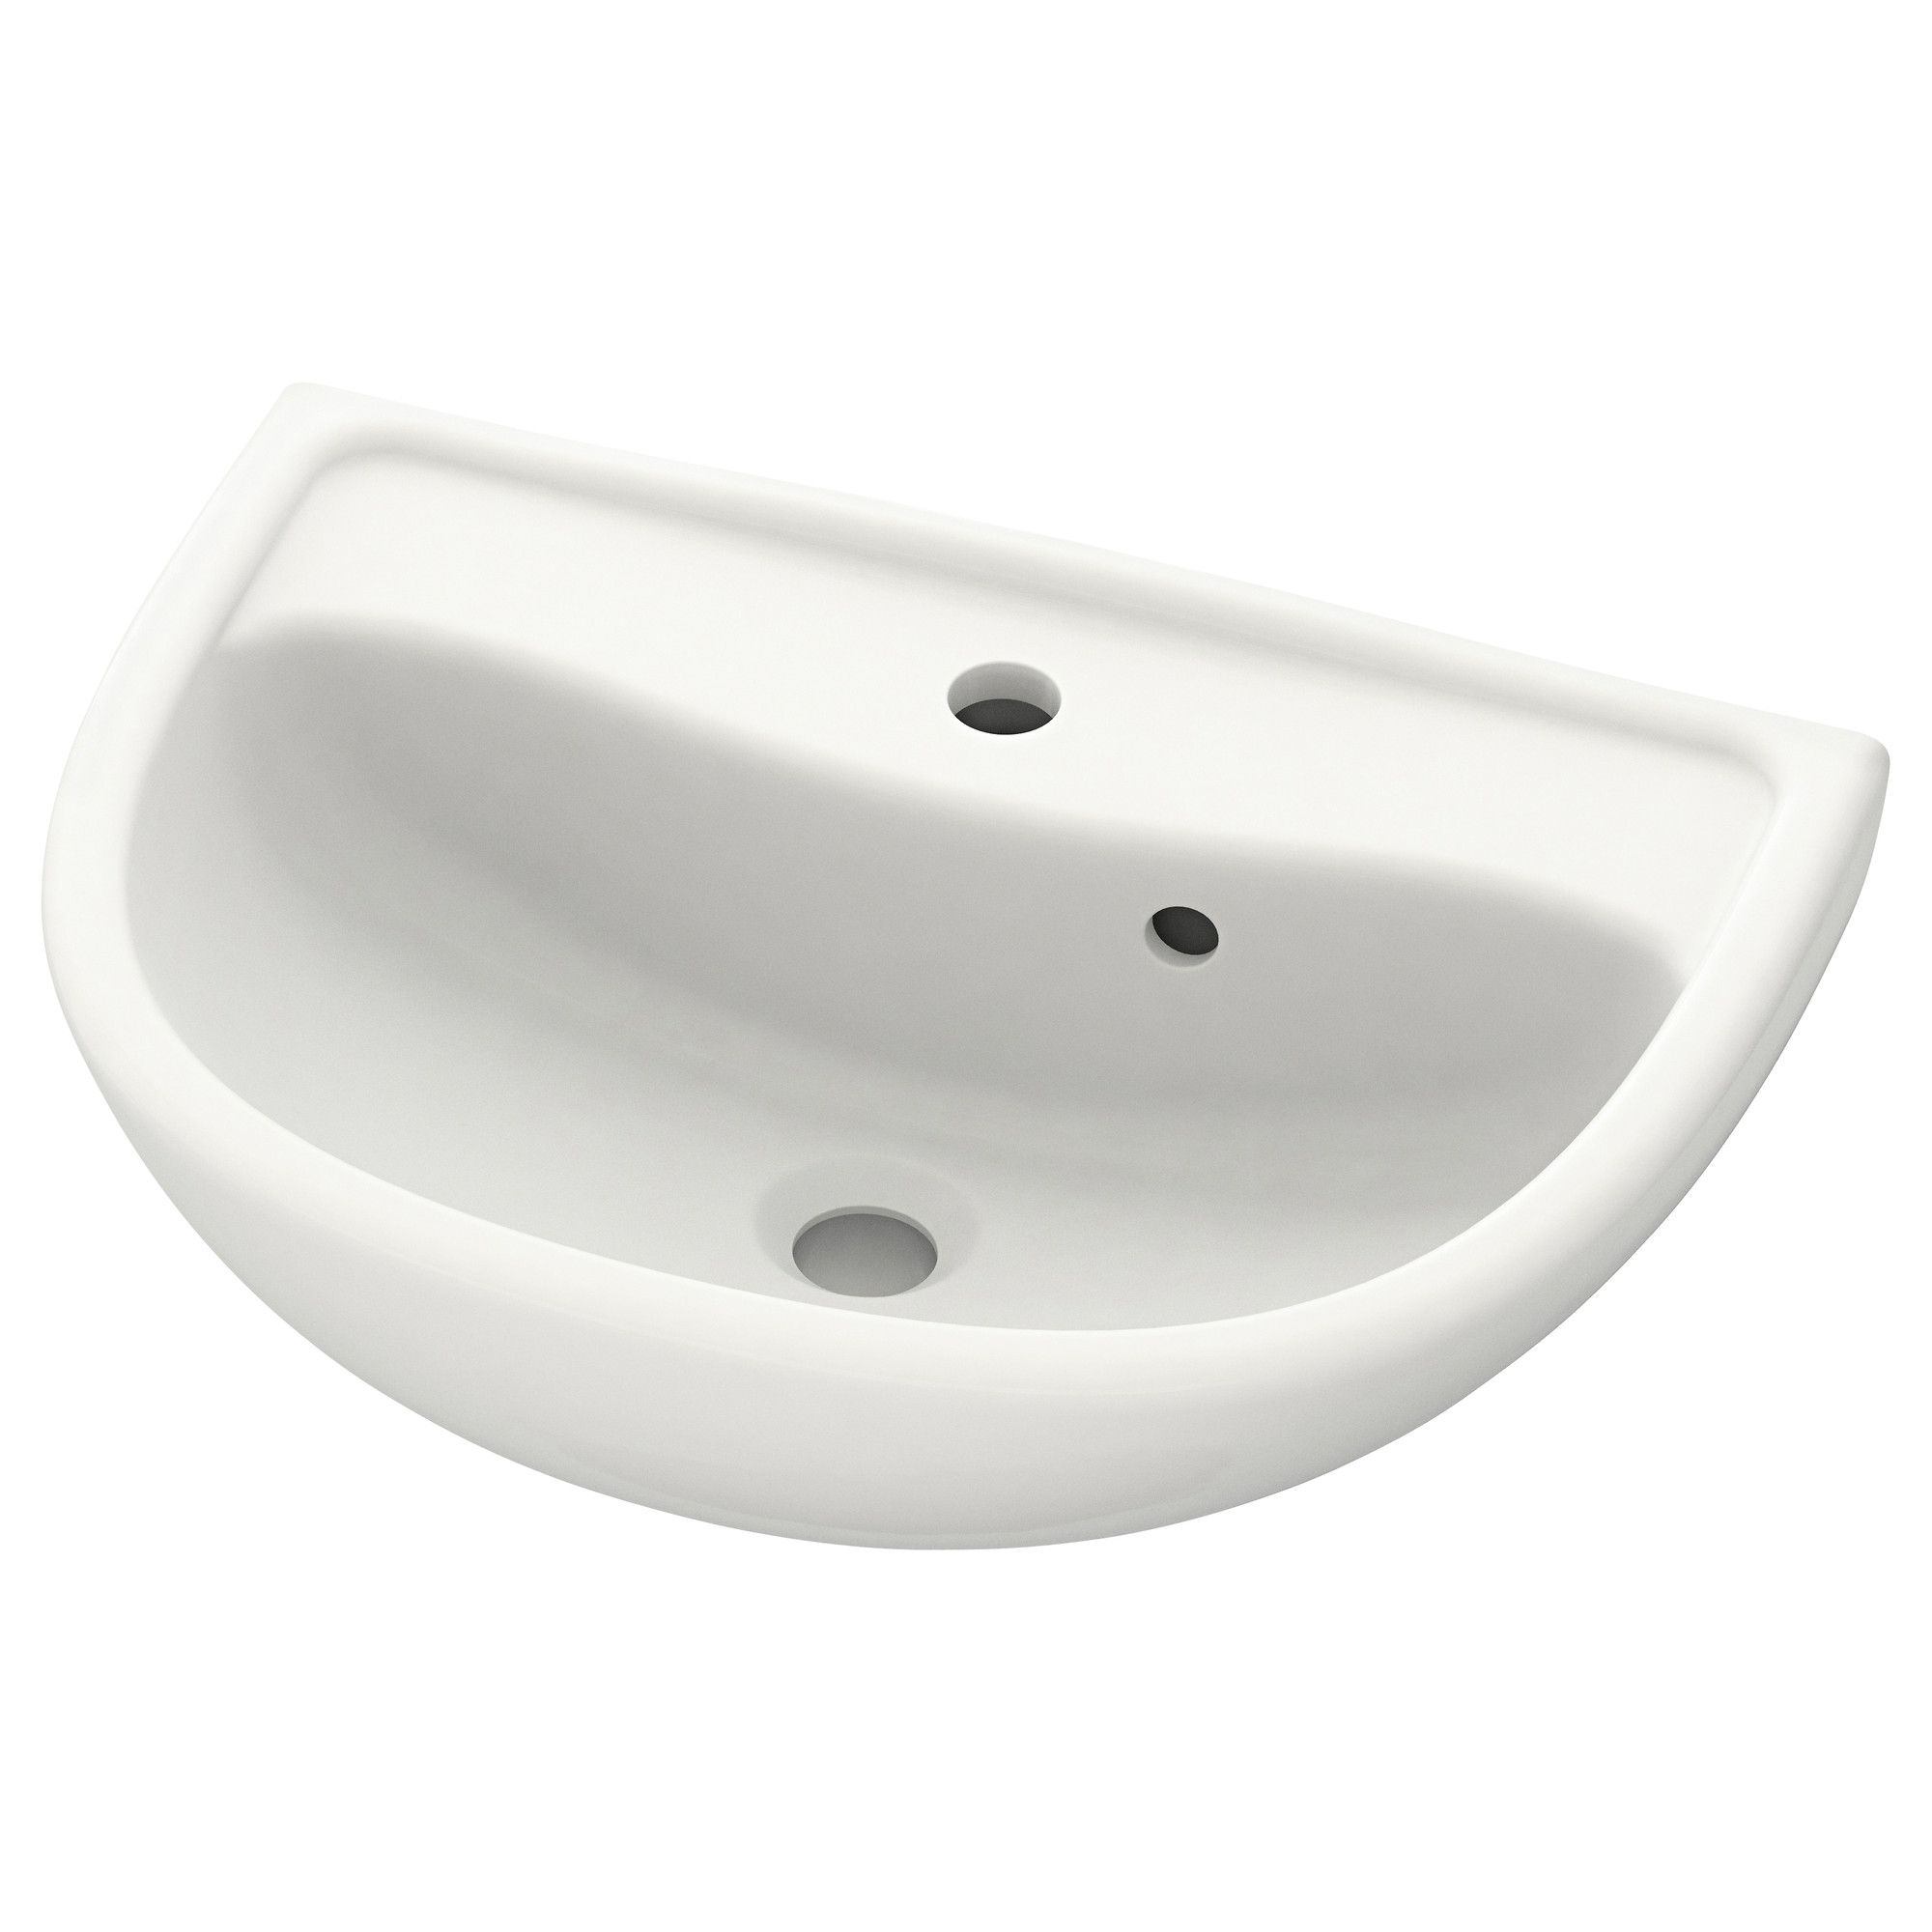 IREVIKEN Sink IKEA 202 237 16 Hand washing sink for public